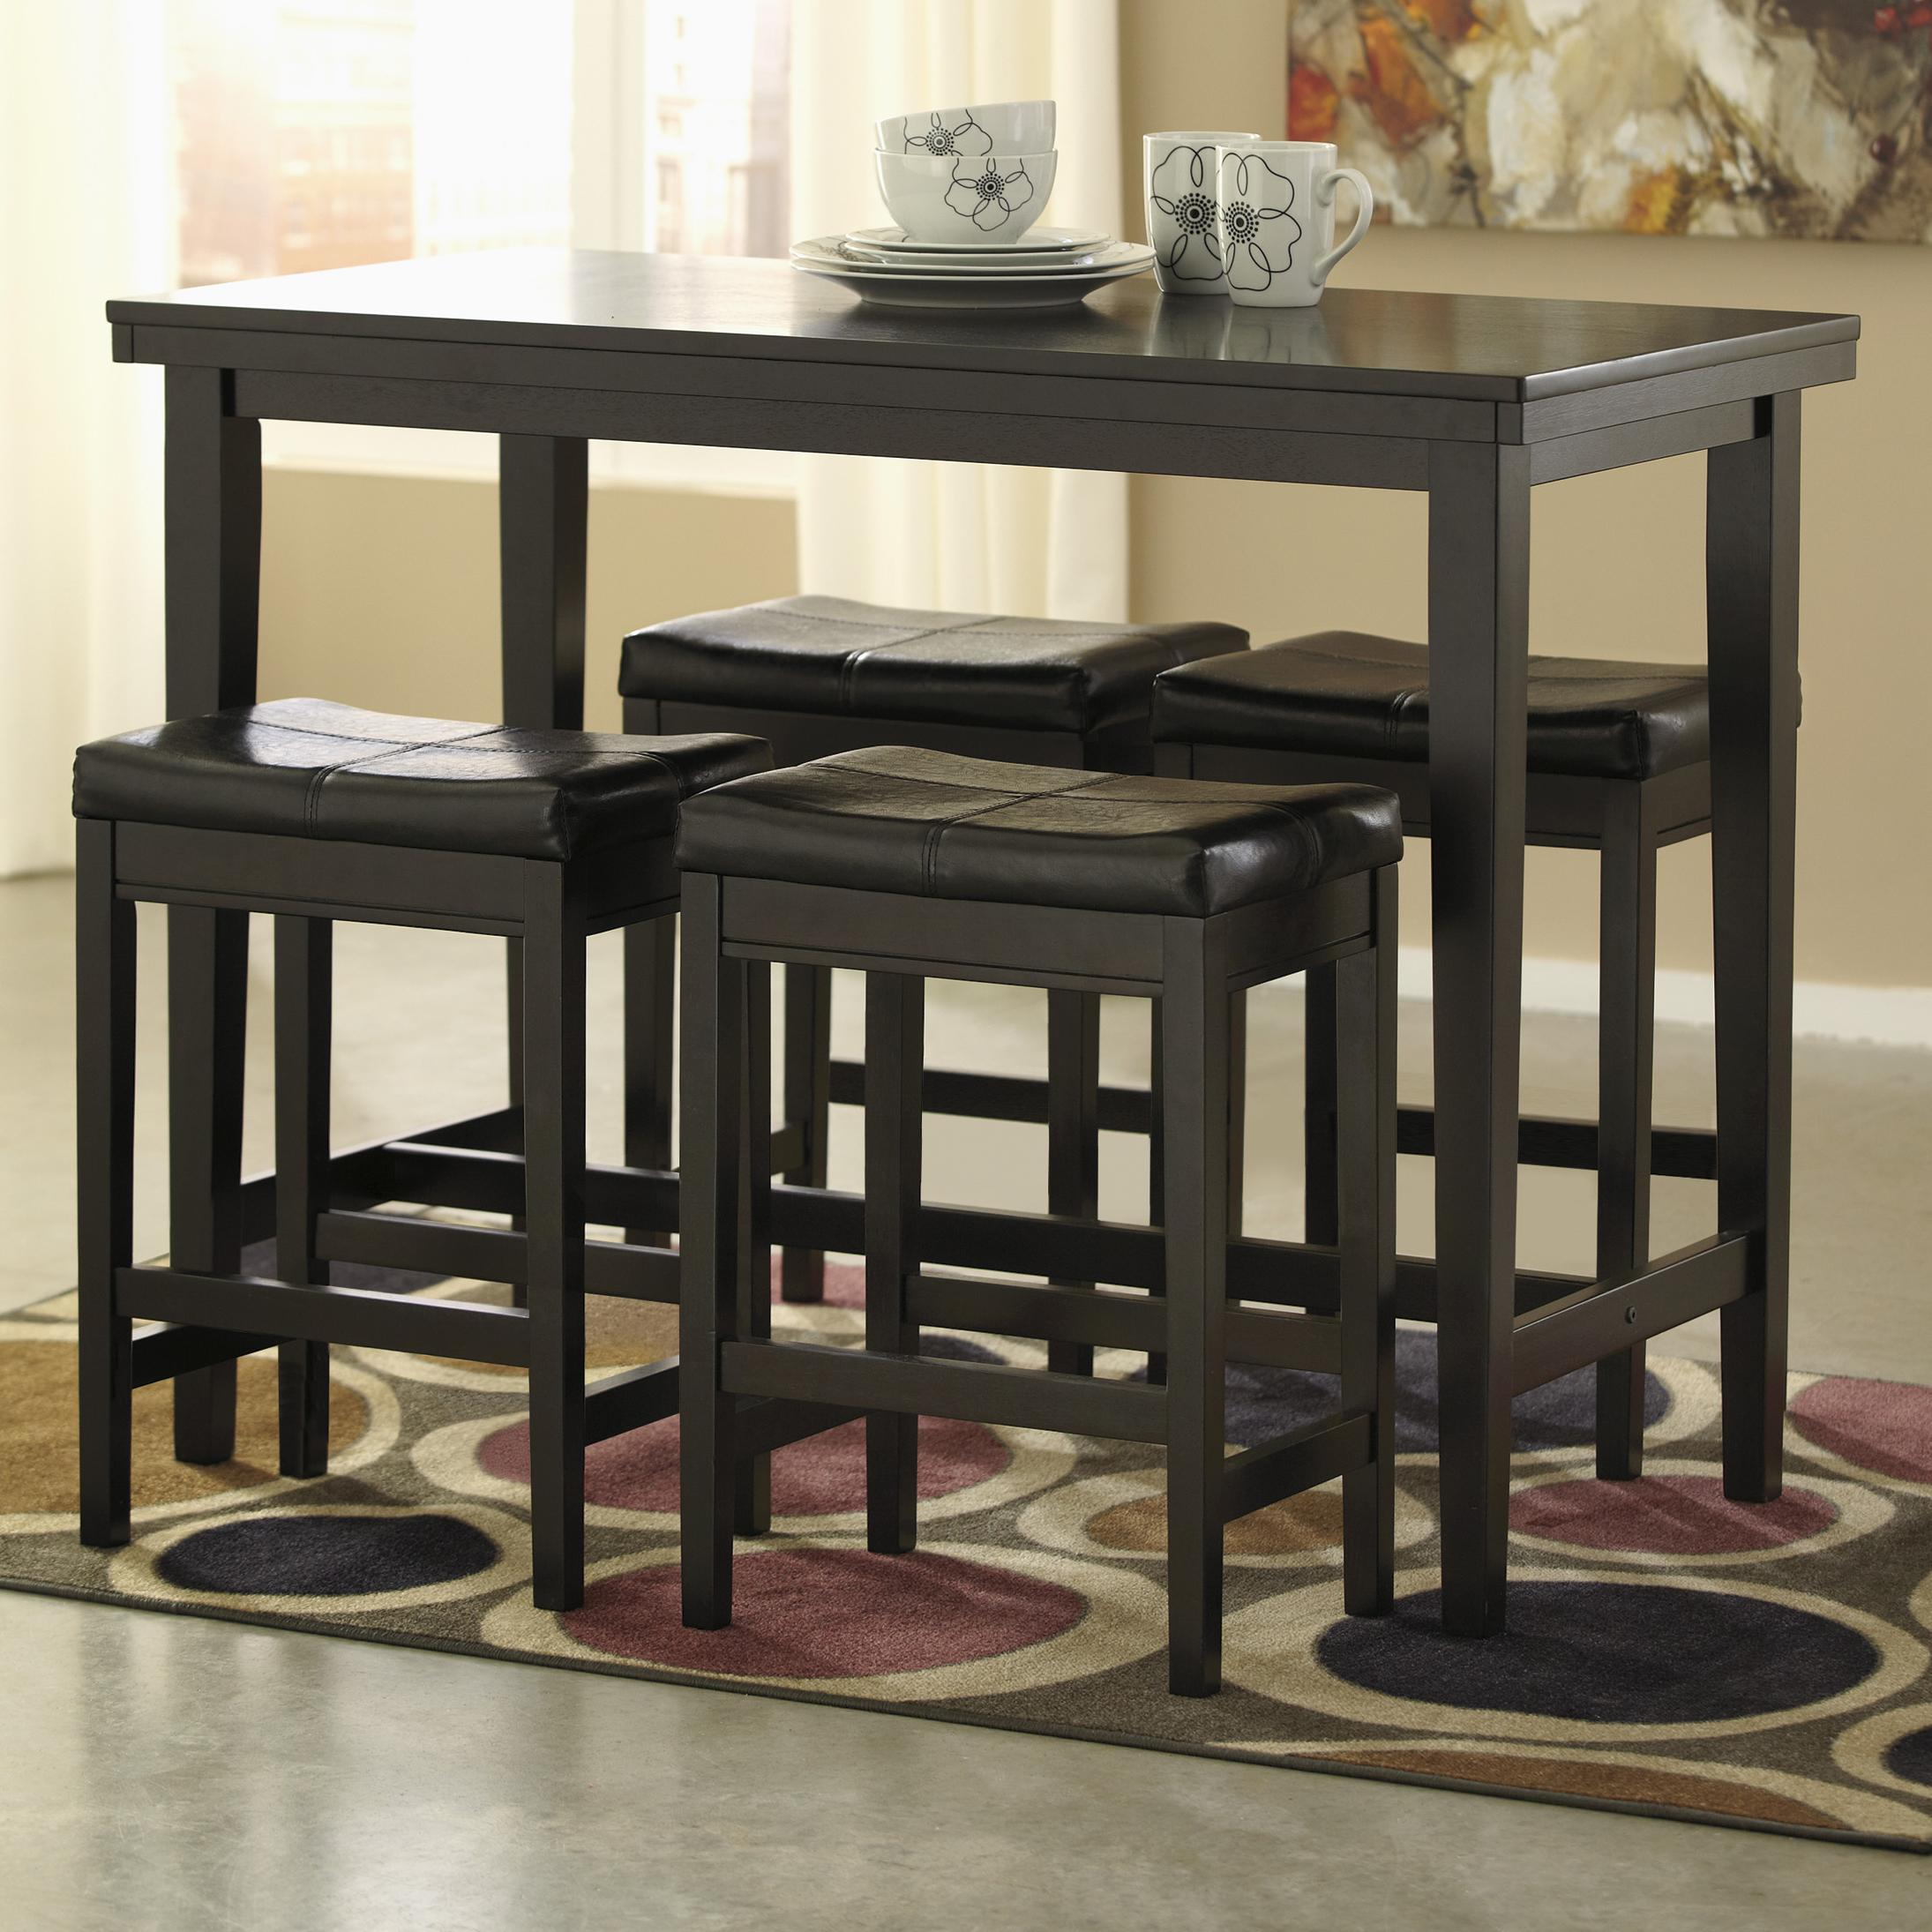 5 Piece Counter Table Set With Dark Brown Upholstered Stools By Signature Design By Ashley